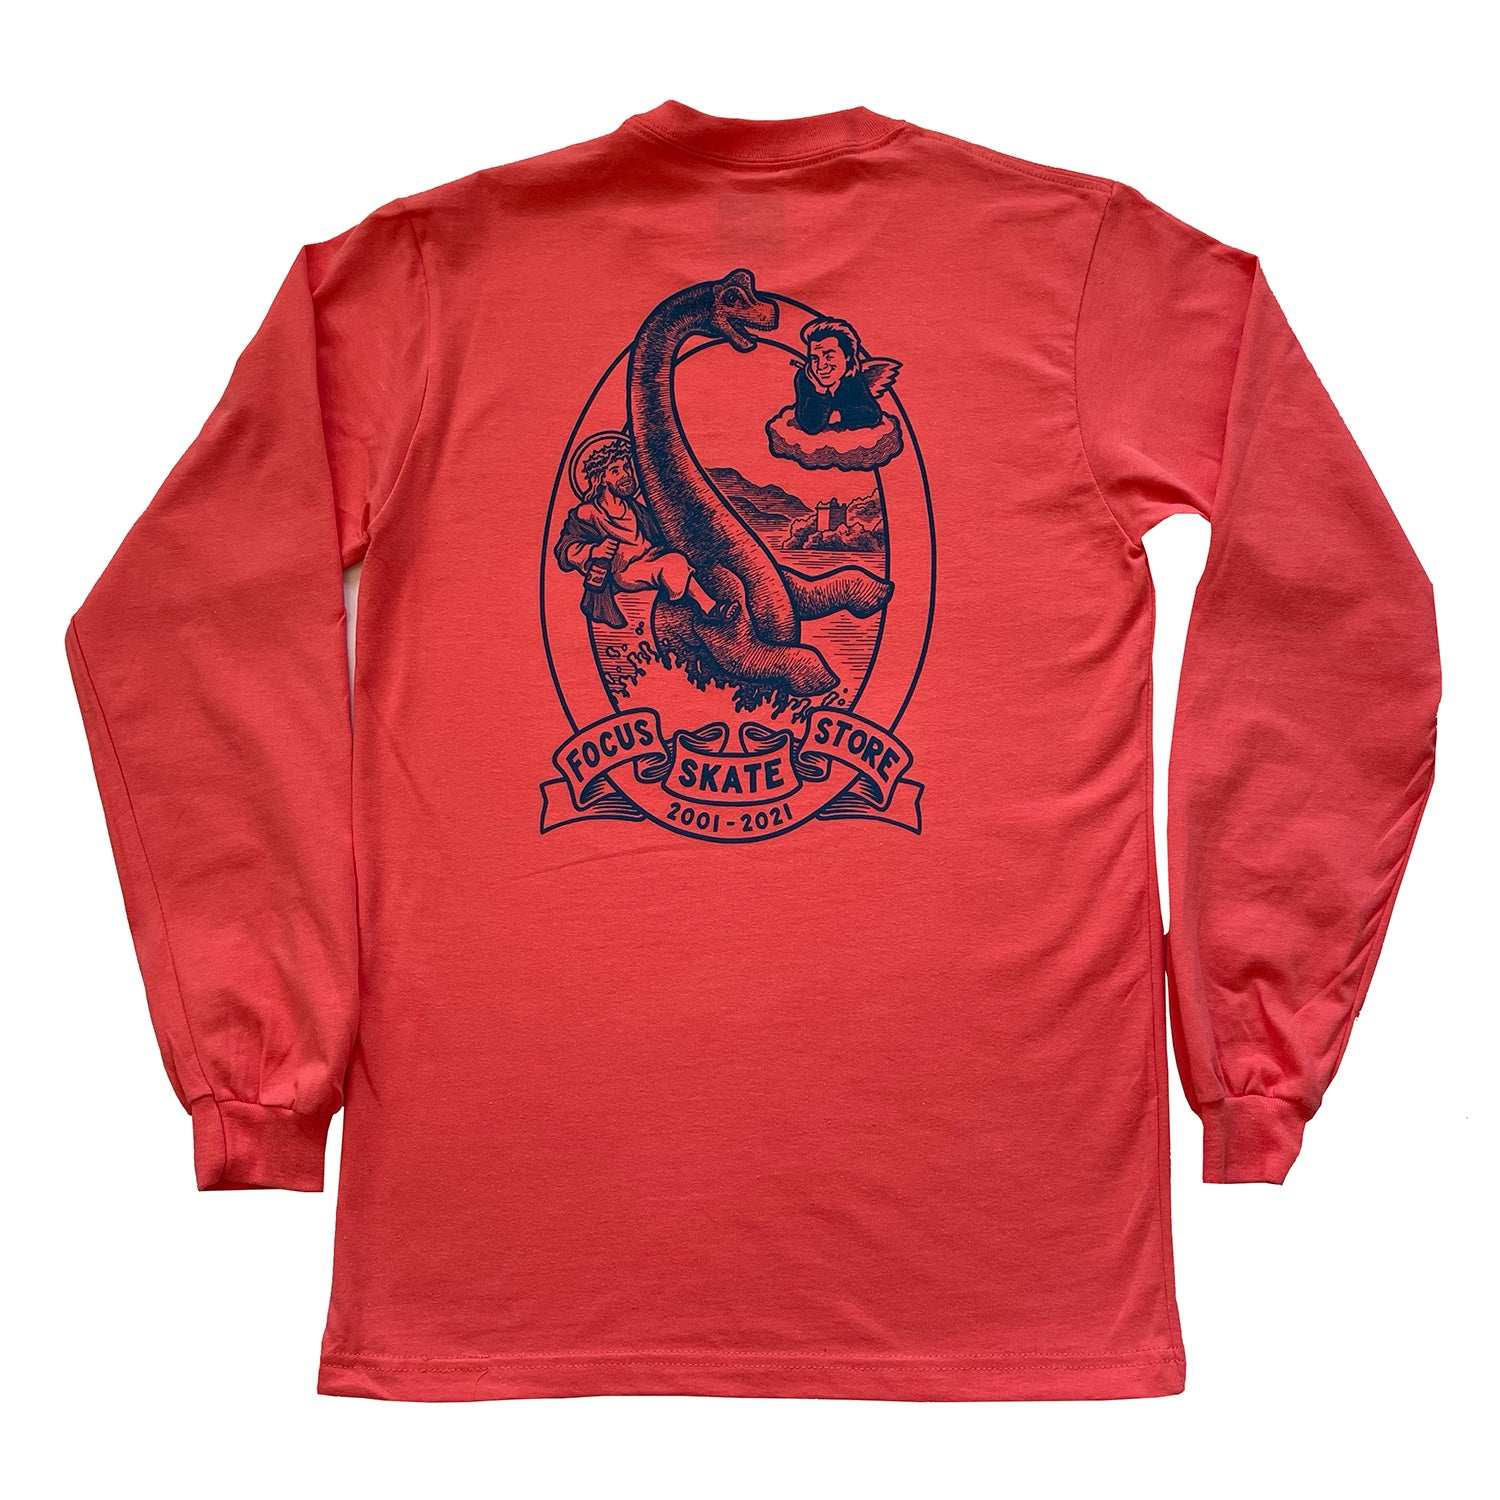 Focus XX Anniversary Long Sleeve T-shirt - Coral